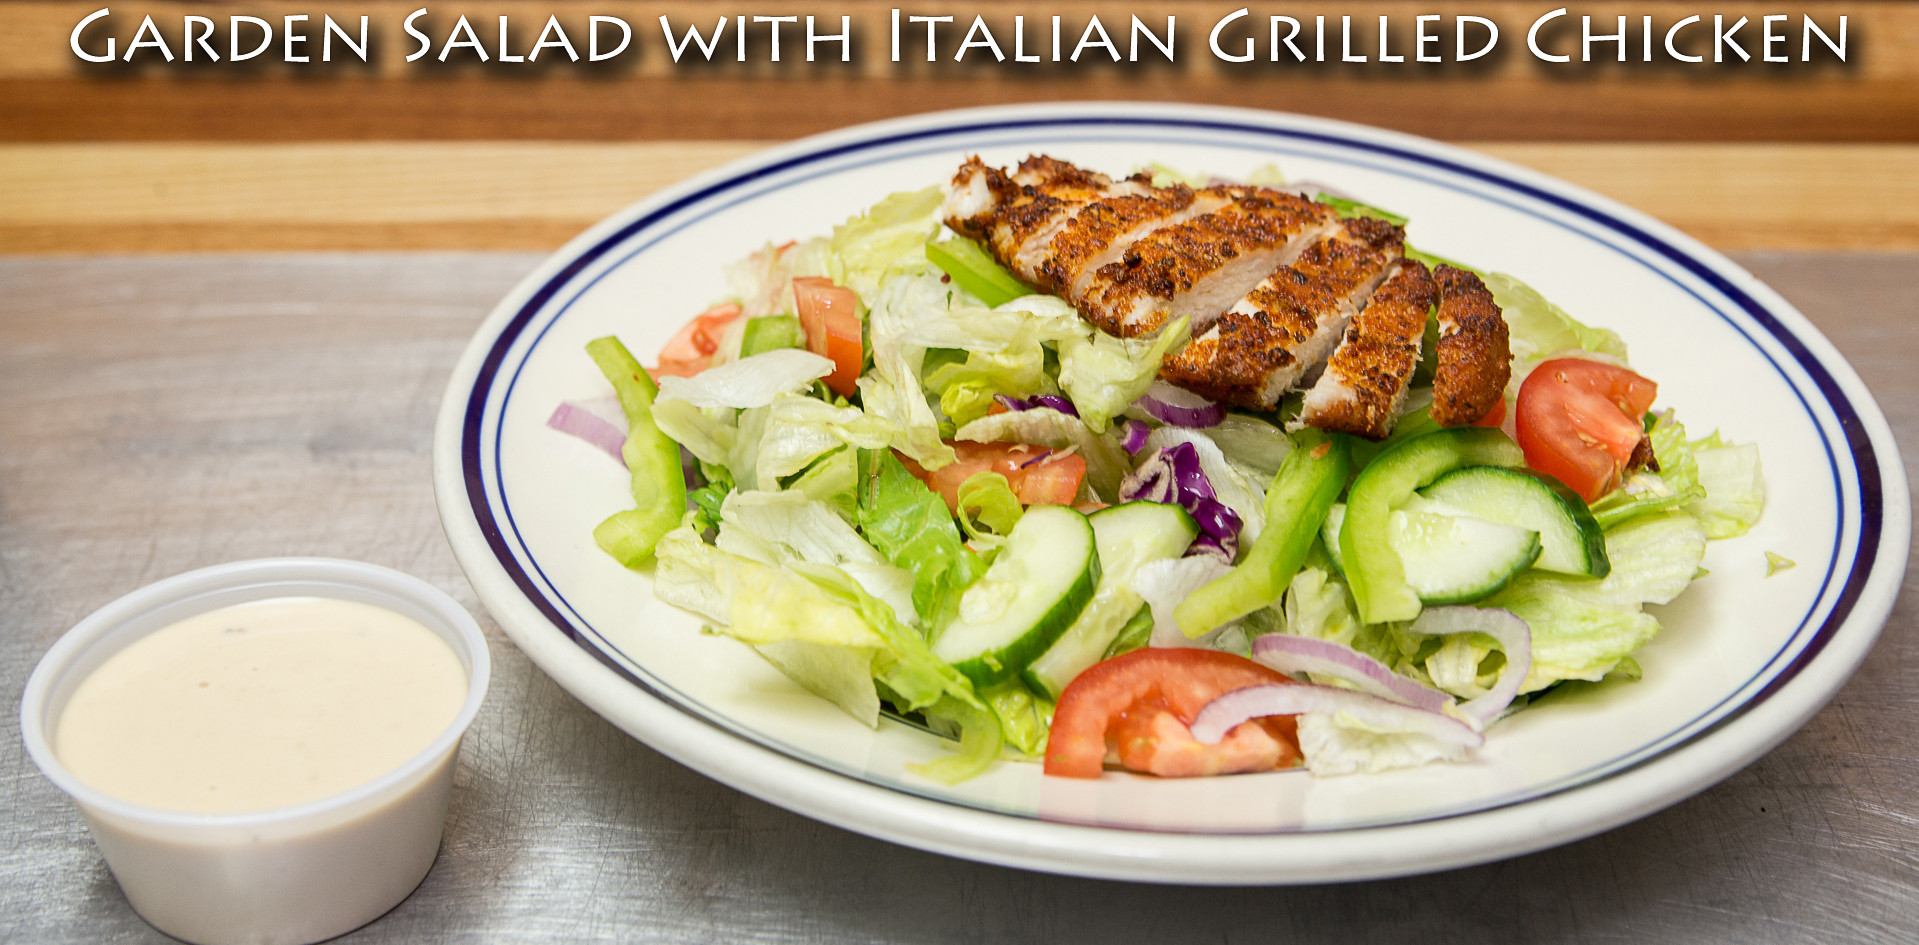 Garden Salad with Italian Grilled Chicken